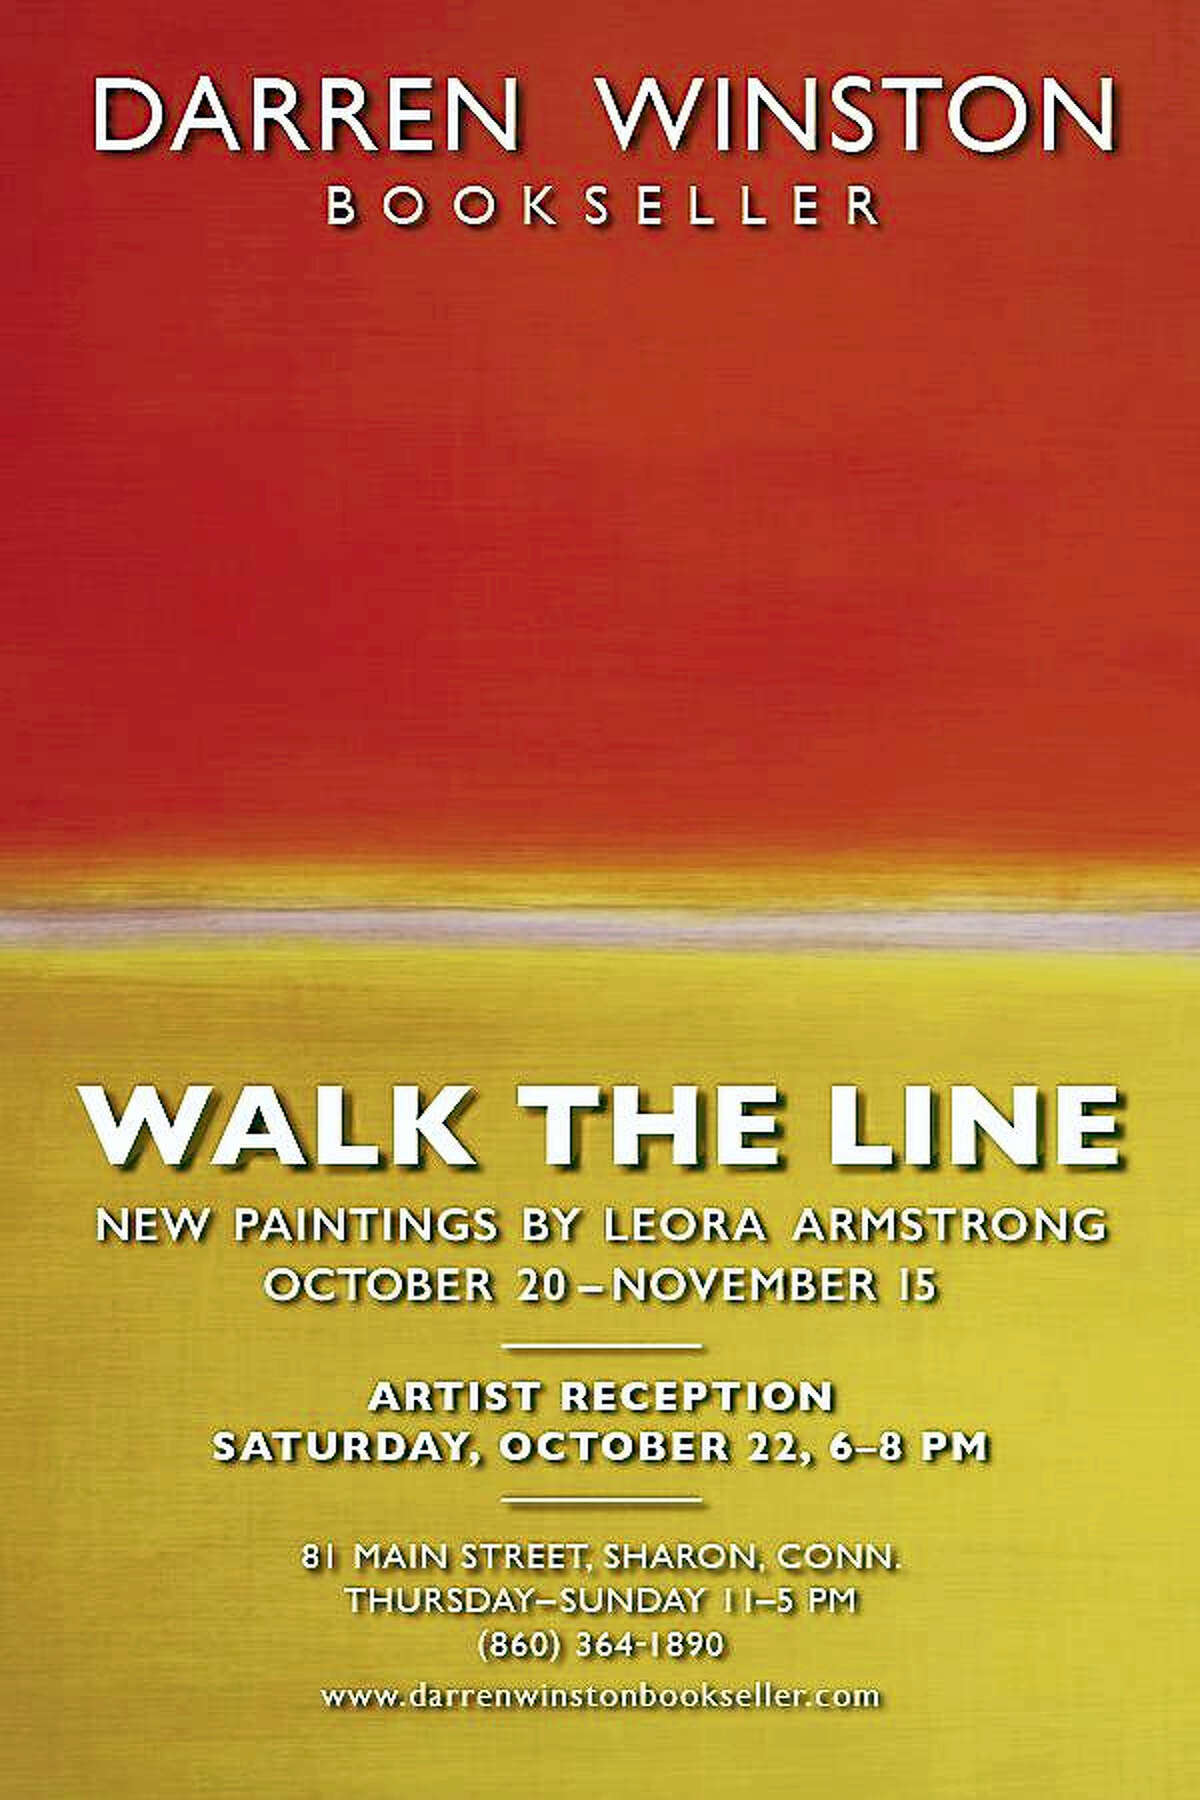 Contributed photo Darren Winston Bookseller's new show, Walk the Line, features paintings by Leora Armstrong.